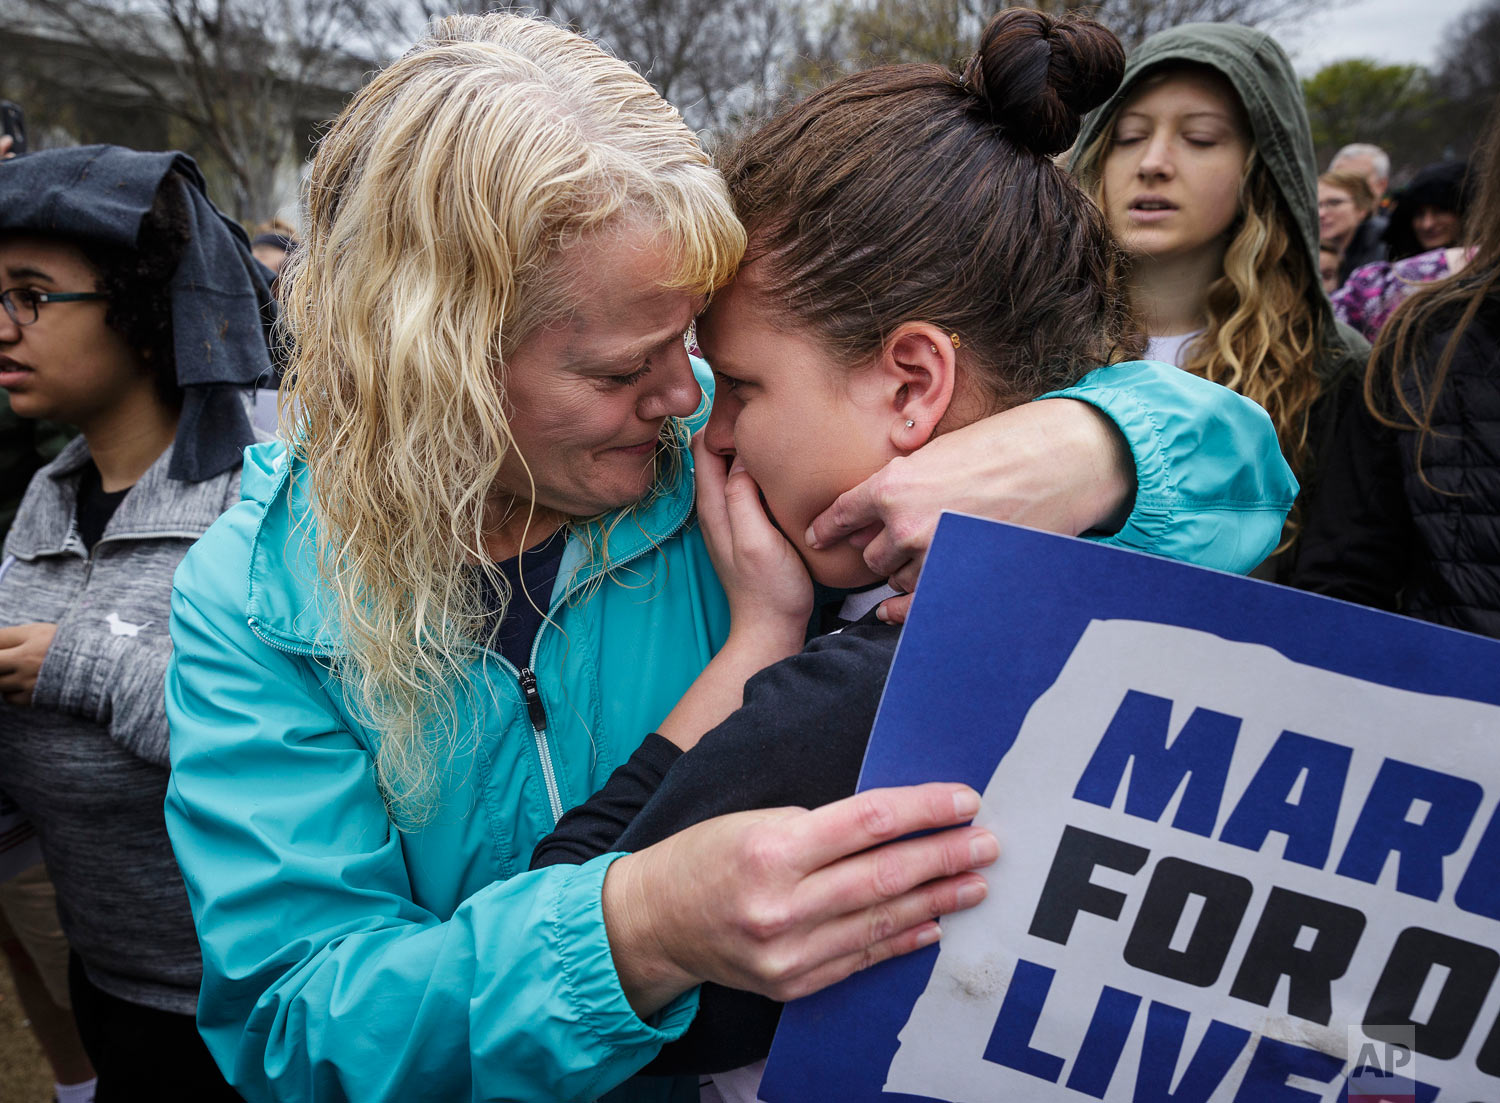 """Brenda Myers, center, comforts her daughter Jamie, who is an Ooltewah Middle School student, after a moment of silence at a """"March for Our Lives"""" rally in Coolidge Park on Saturday, March 24, 2018, in Chattanooga, Tenn. (Doug Strickland/Chattanooga Times Free Press via AP)"""